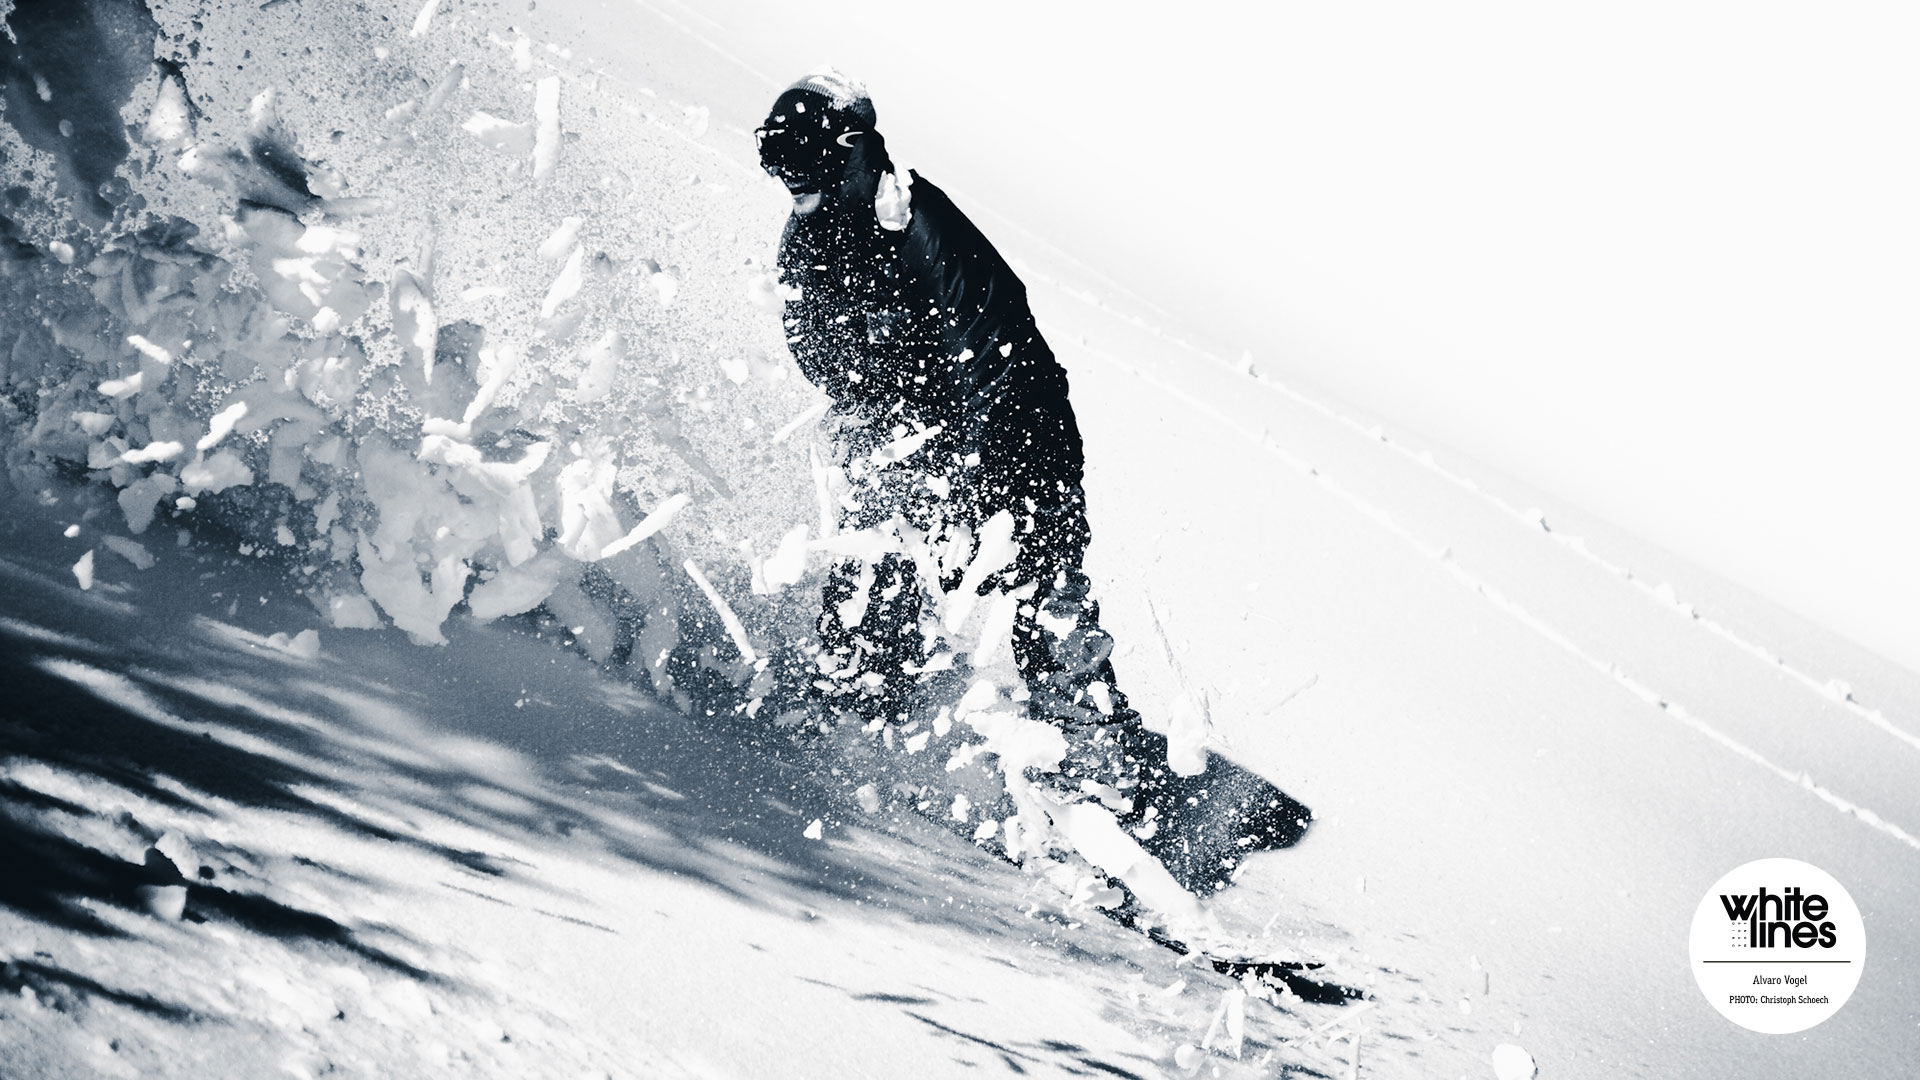 Snowboard Wallpaper